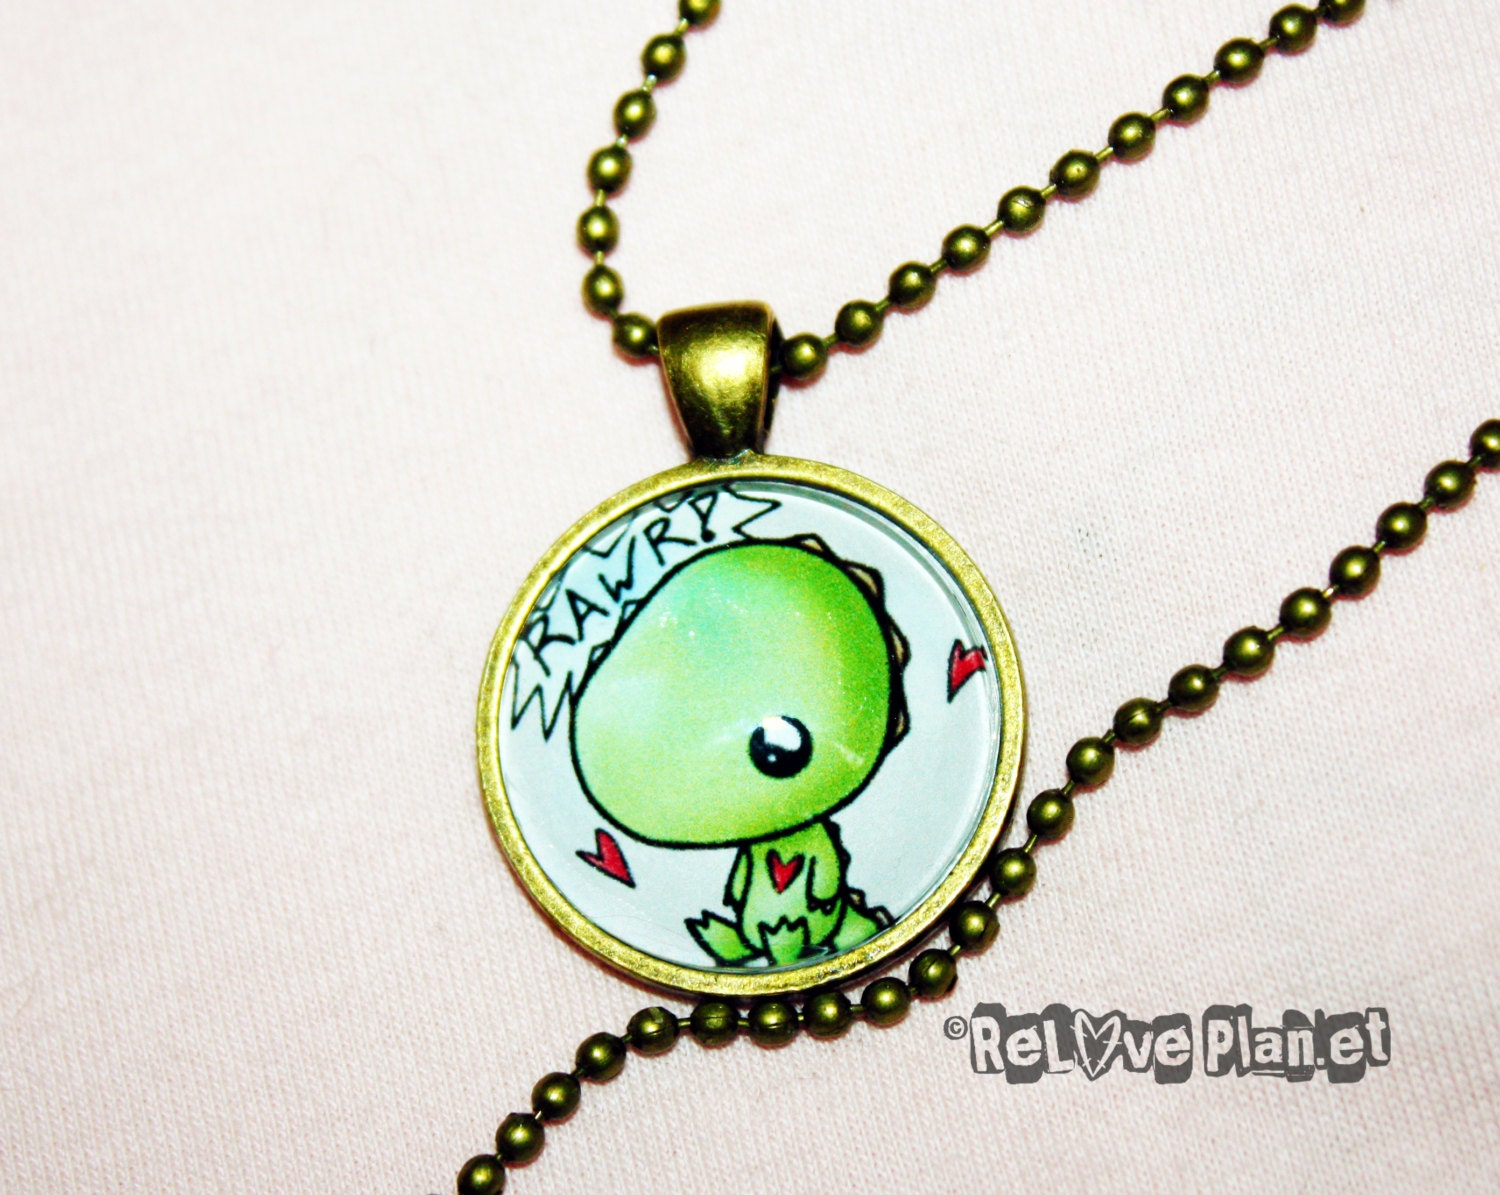 "Rawr Dino 1"" Pendant Necklace - or 2 for 20 - Happy cute kawaii baby dinosaur t-rex - ReLove Plan.et - ReLovePlanet"